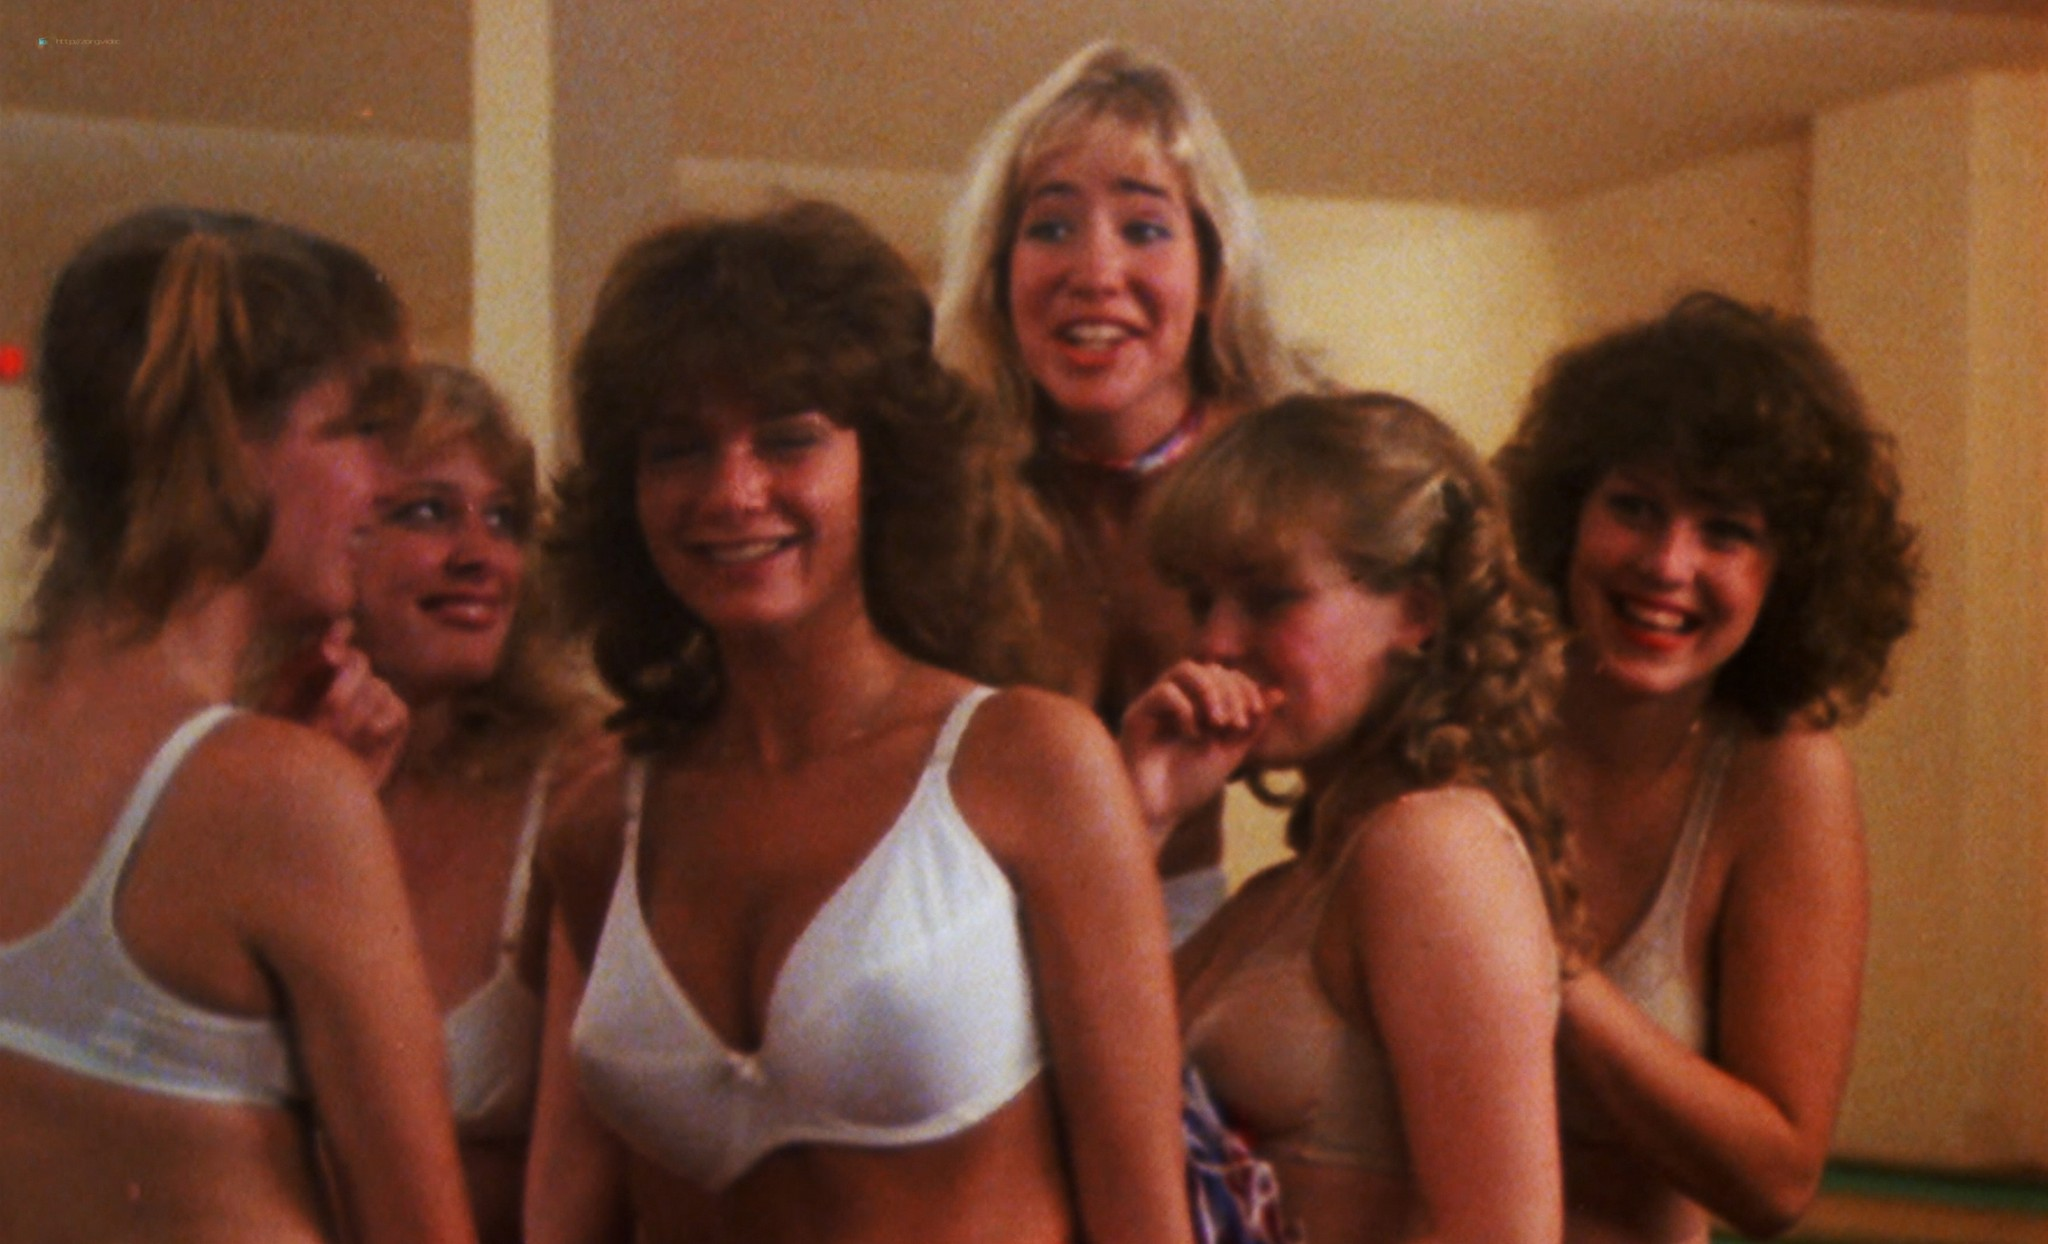 Linda Shayne nude Jennifer Inch, Astrid Brandt and other nude too - Screwballs (1983) HD 1080p BluRay (6)